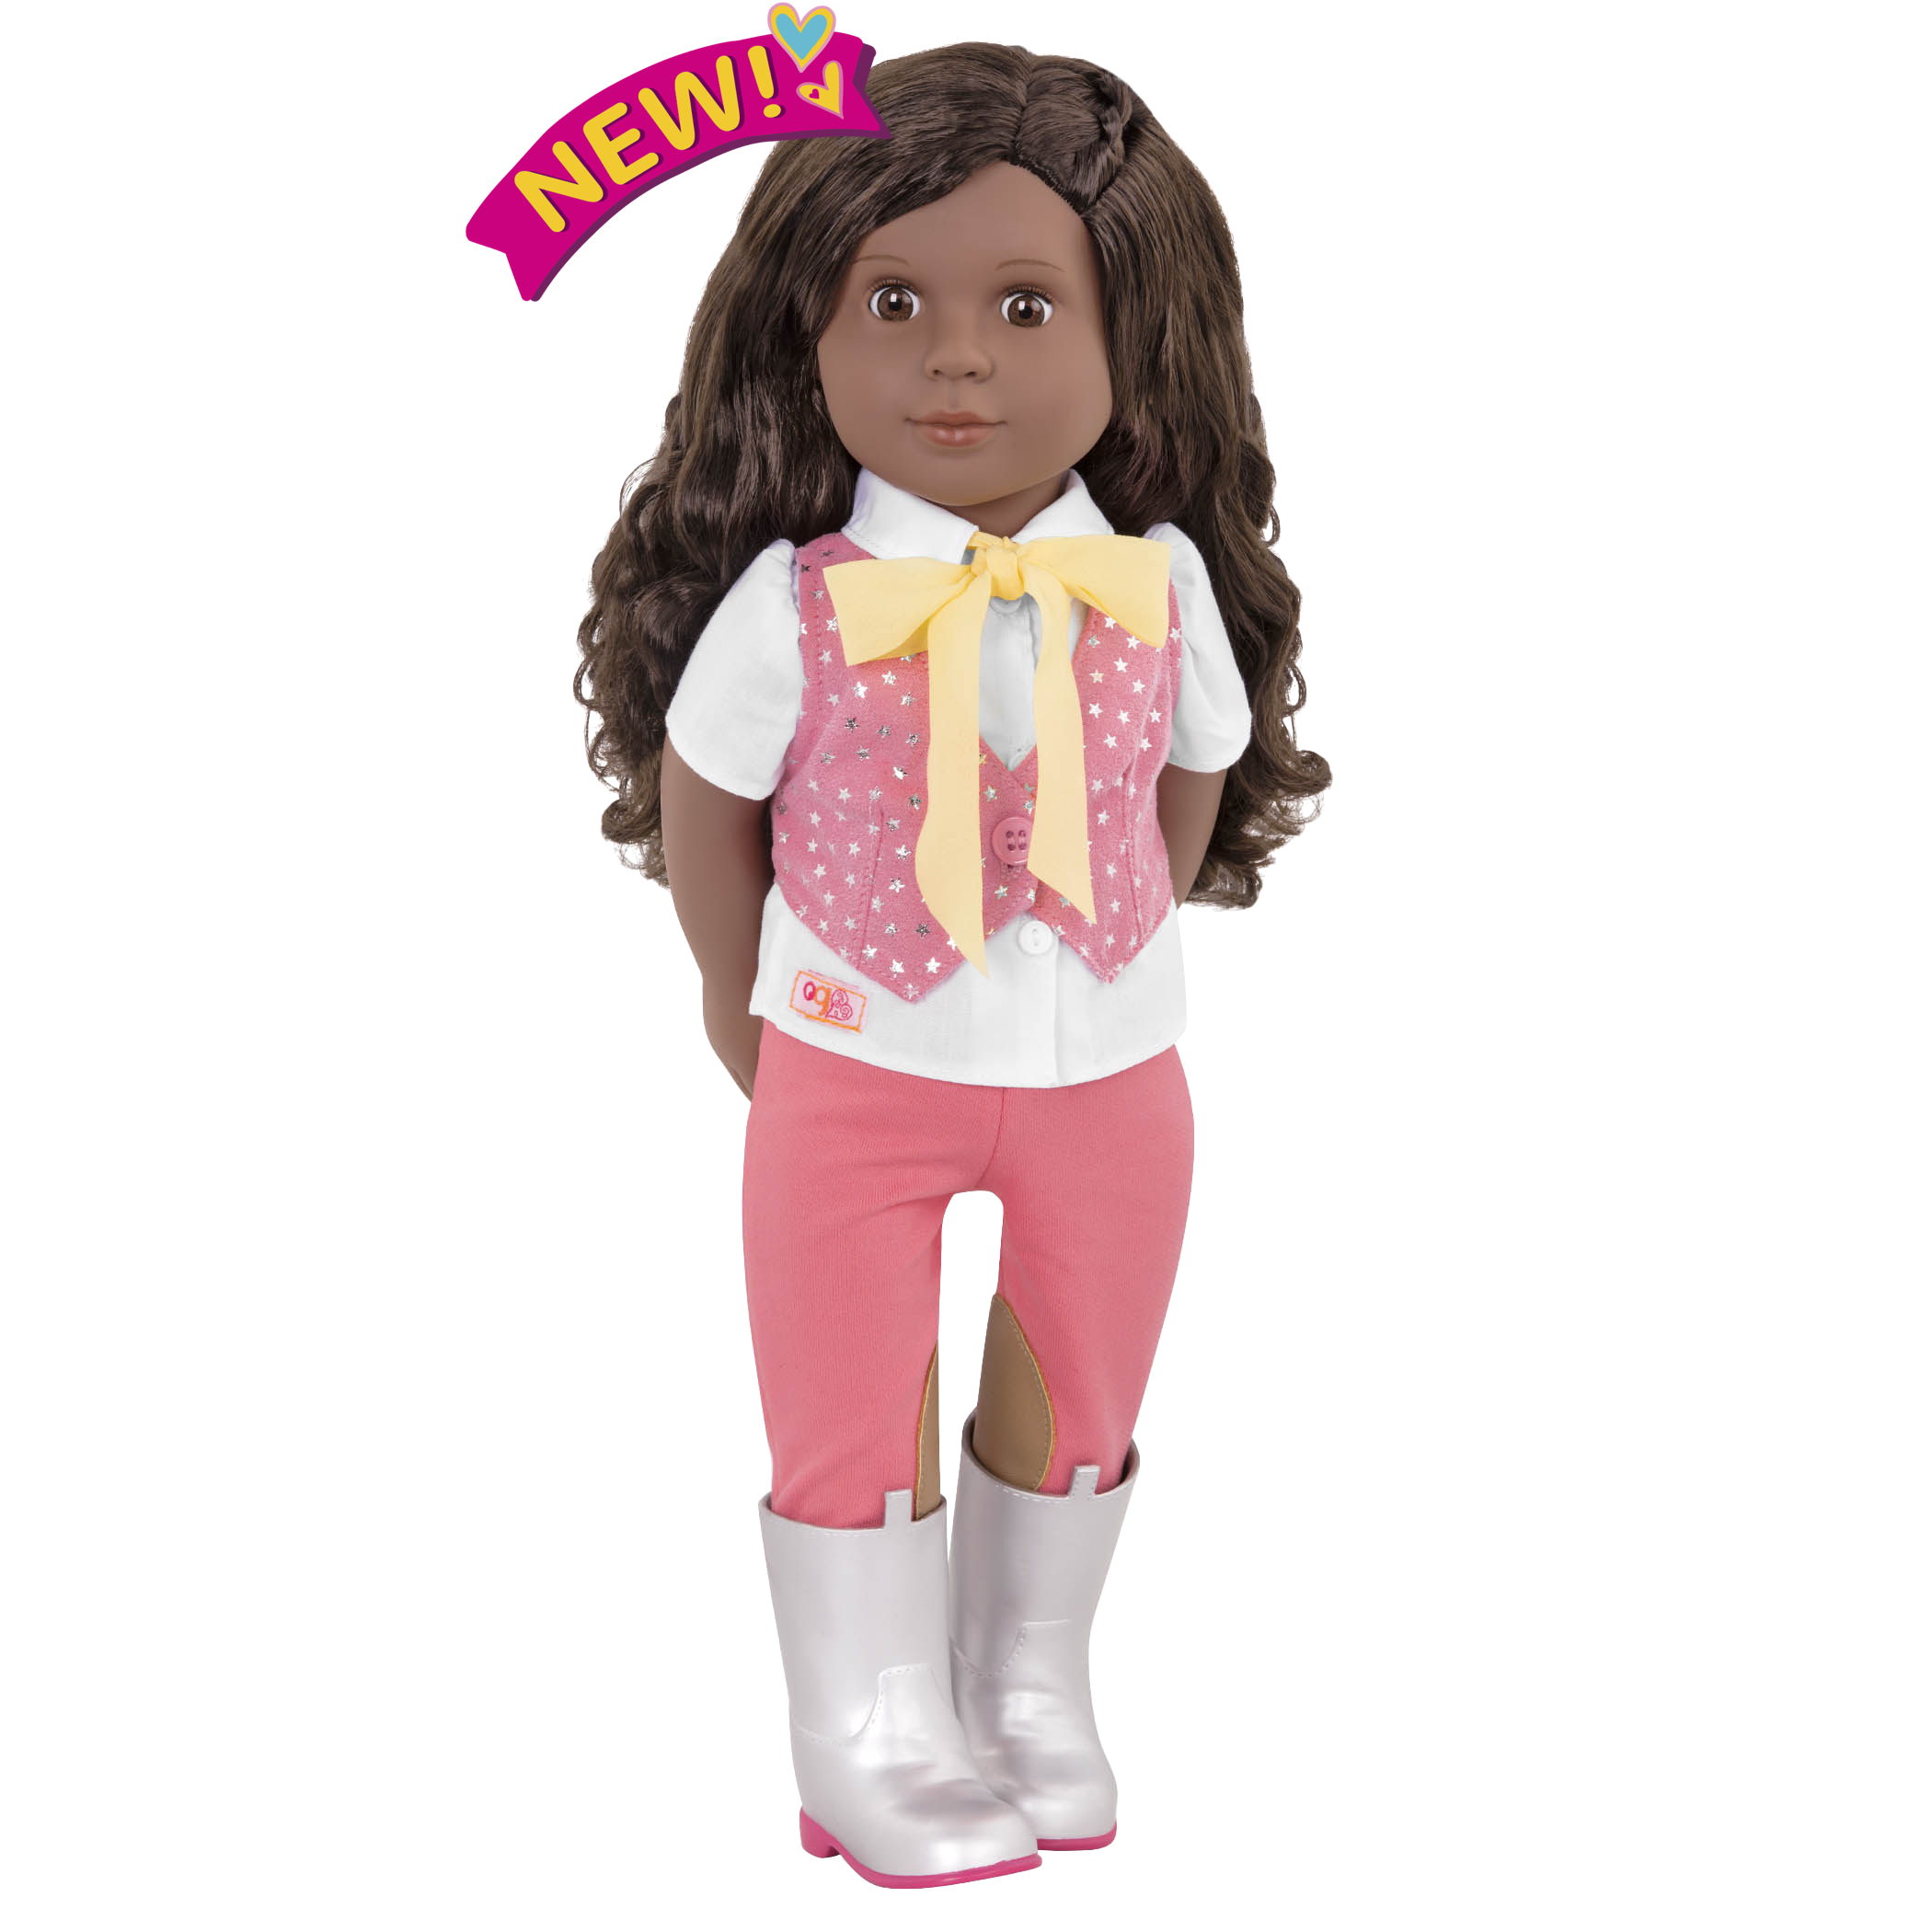 Manuella 18-inch Riding Doll